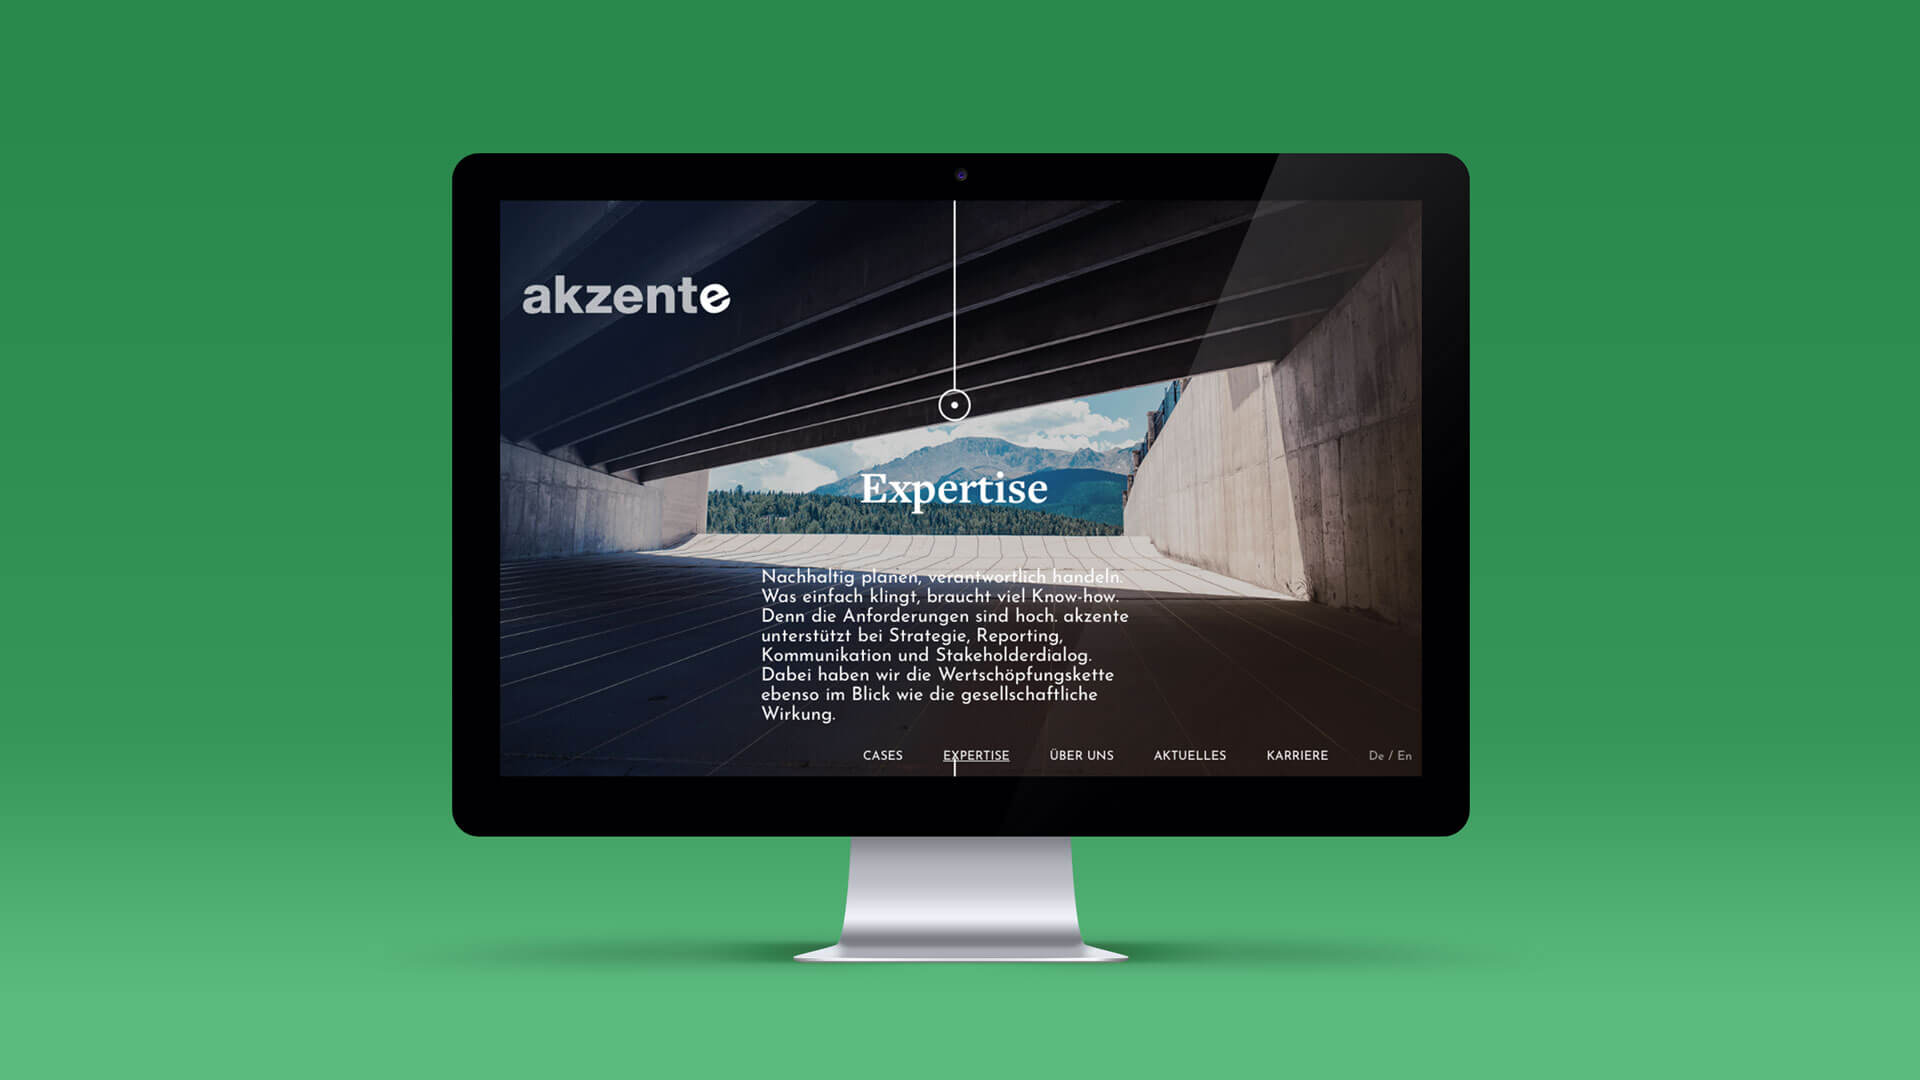 Mockup of the Expertise Page for akzente